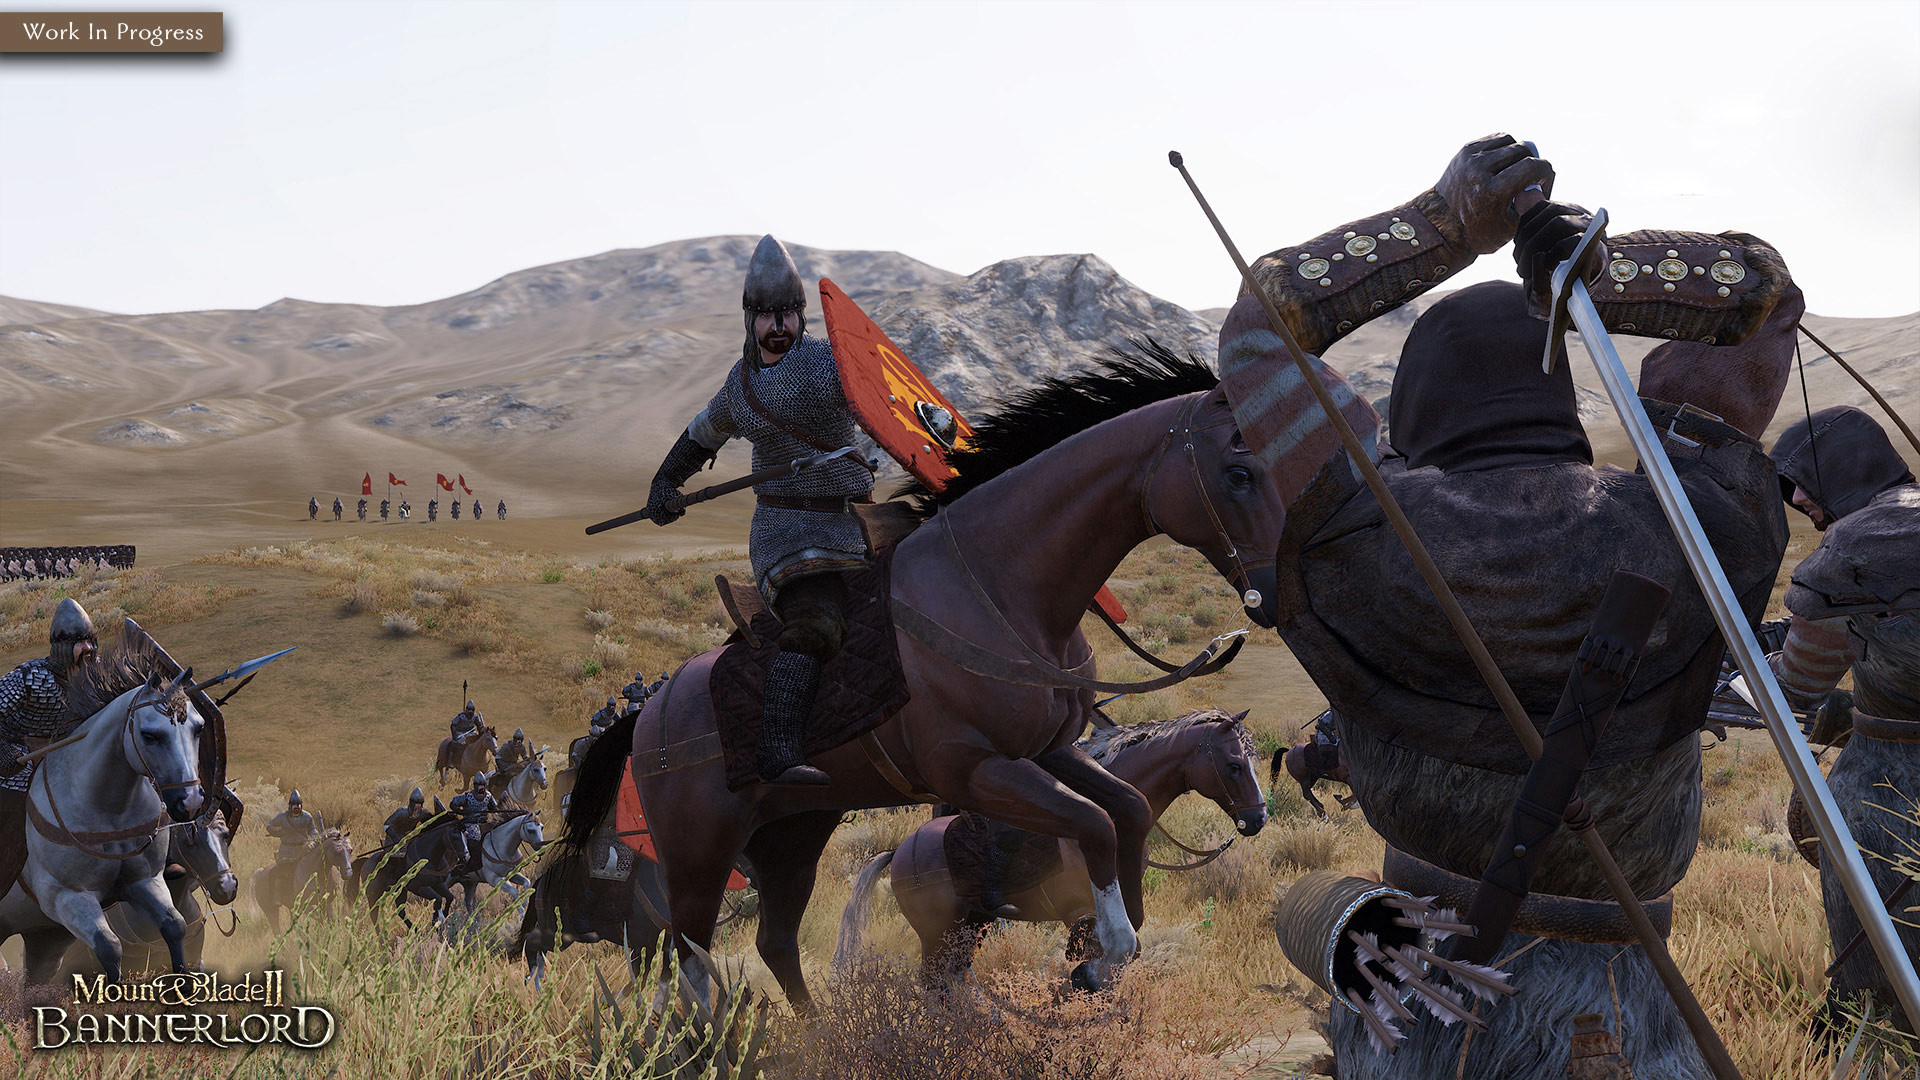 How to get a settlement in Mount and Blade 2: Bannerlord